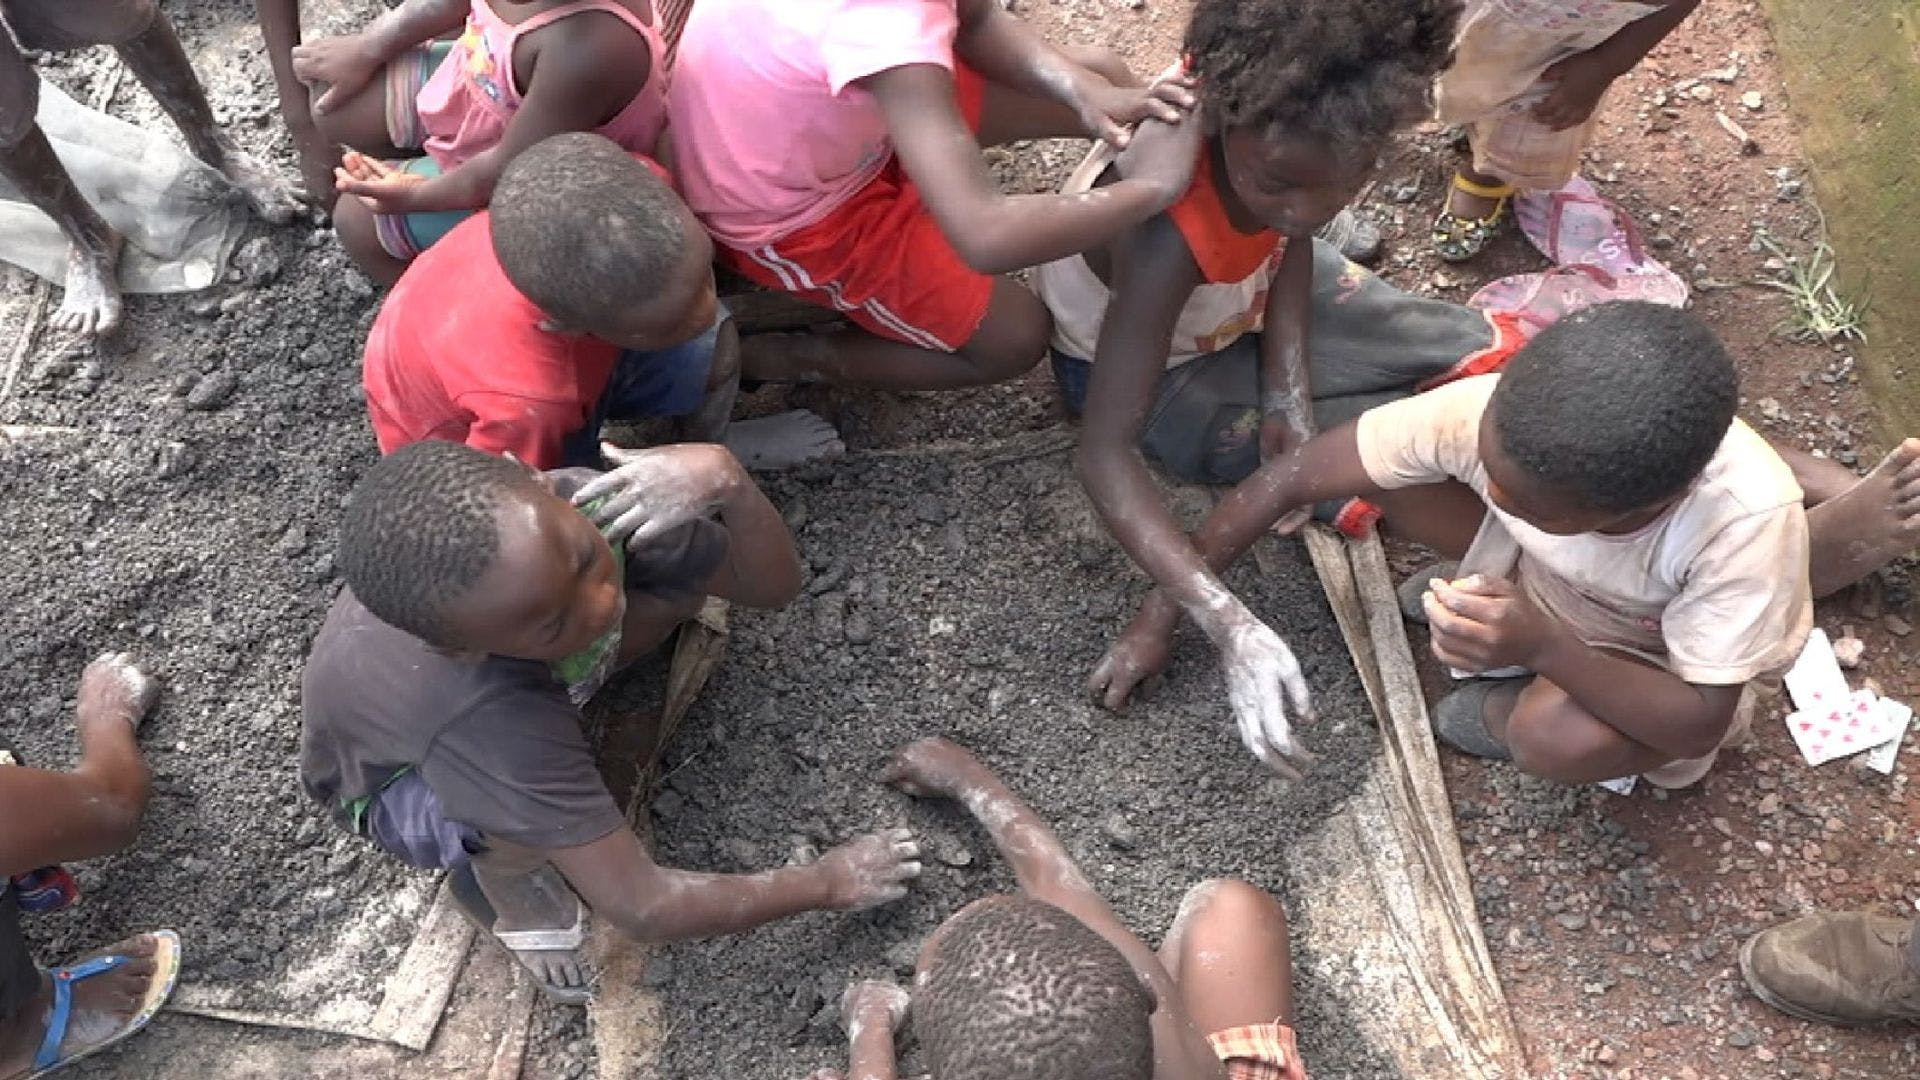 Young children work in the cobalt mines to source cobalt for our smartphones to work. Source: SkyNews